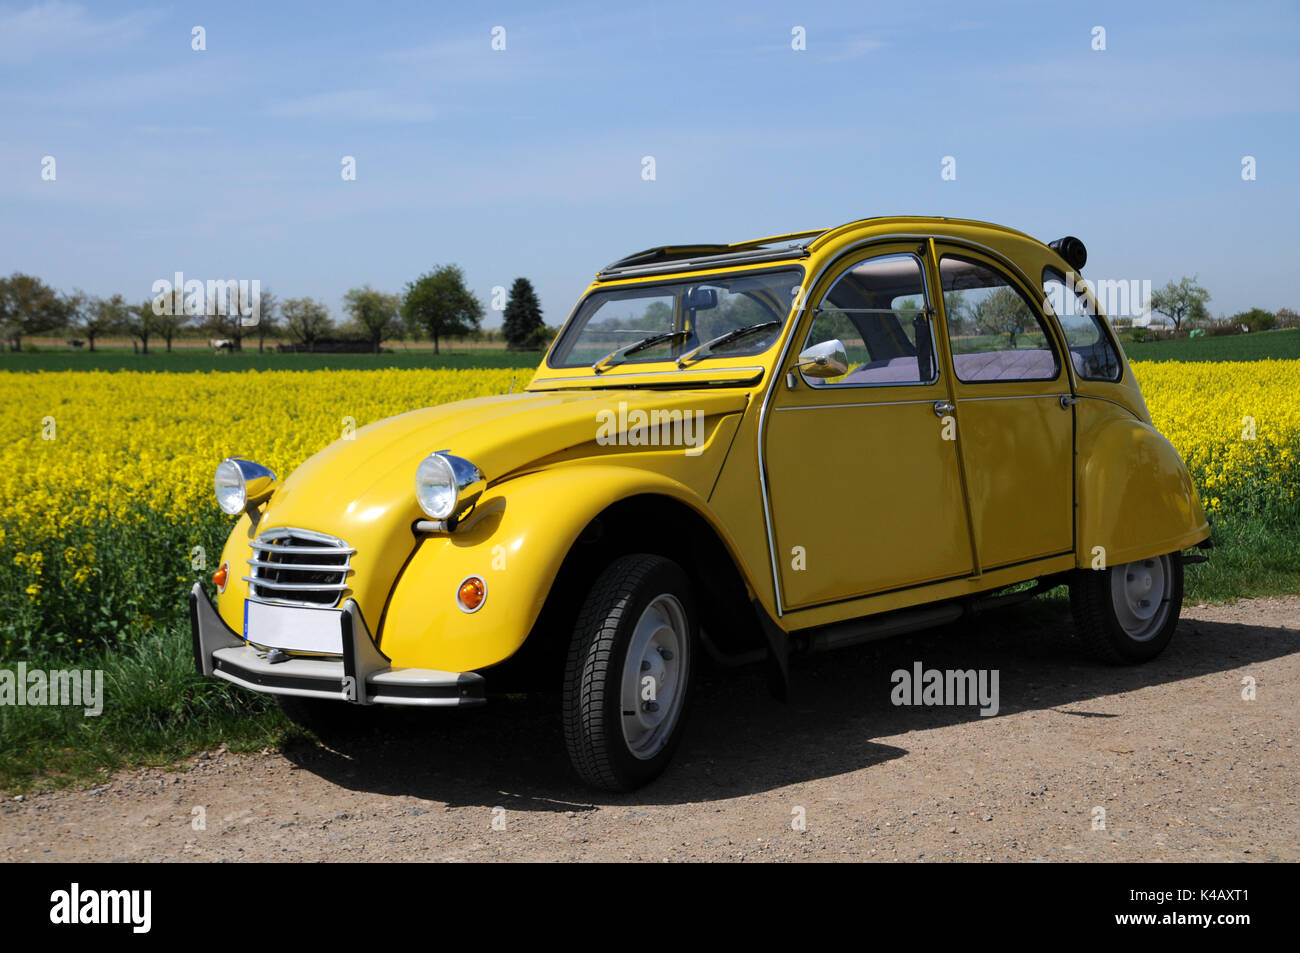 citroen 2cv charleston stock photos  u0026 citroen 2cv charleston stock images